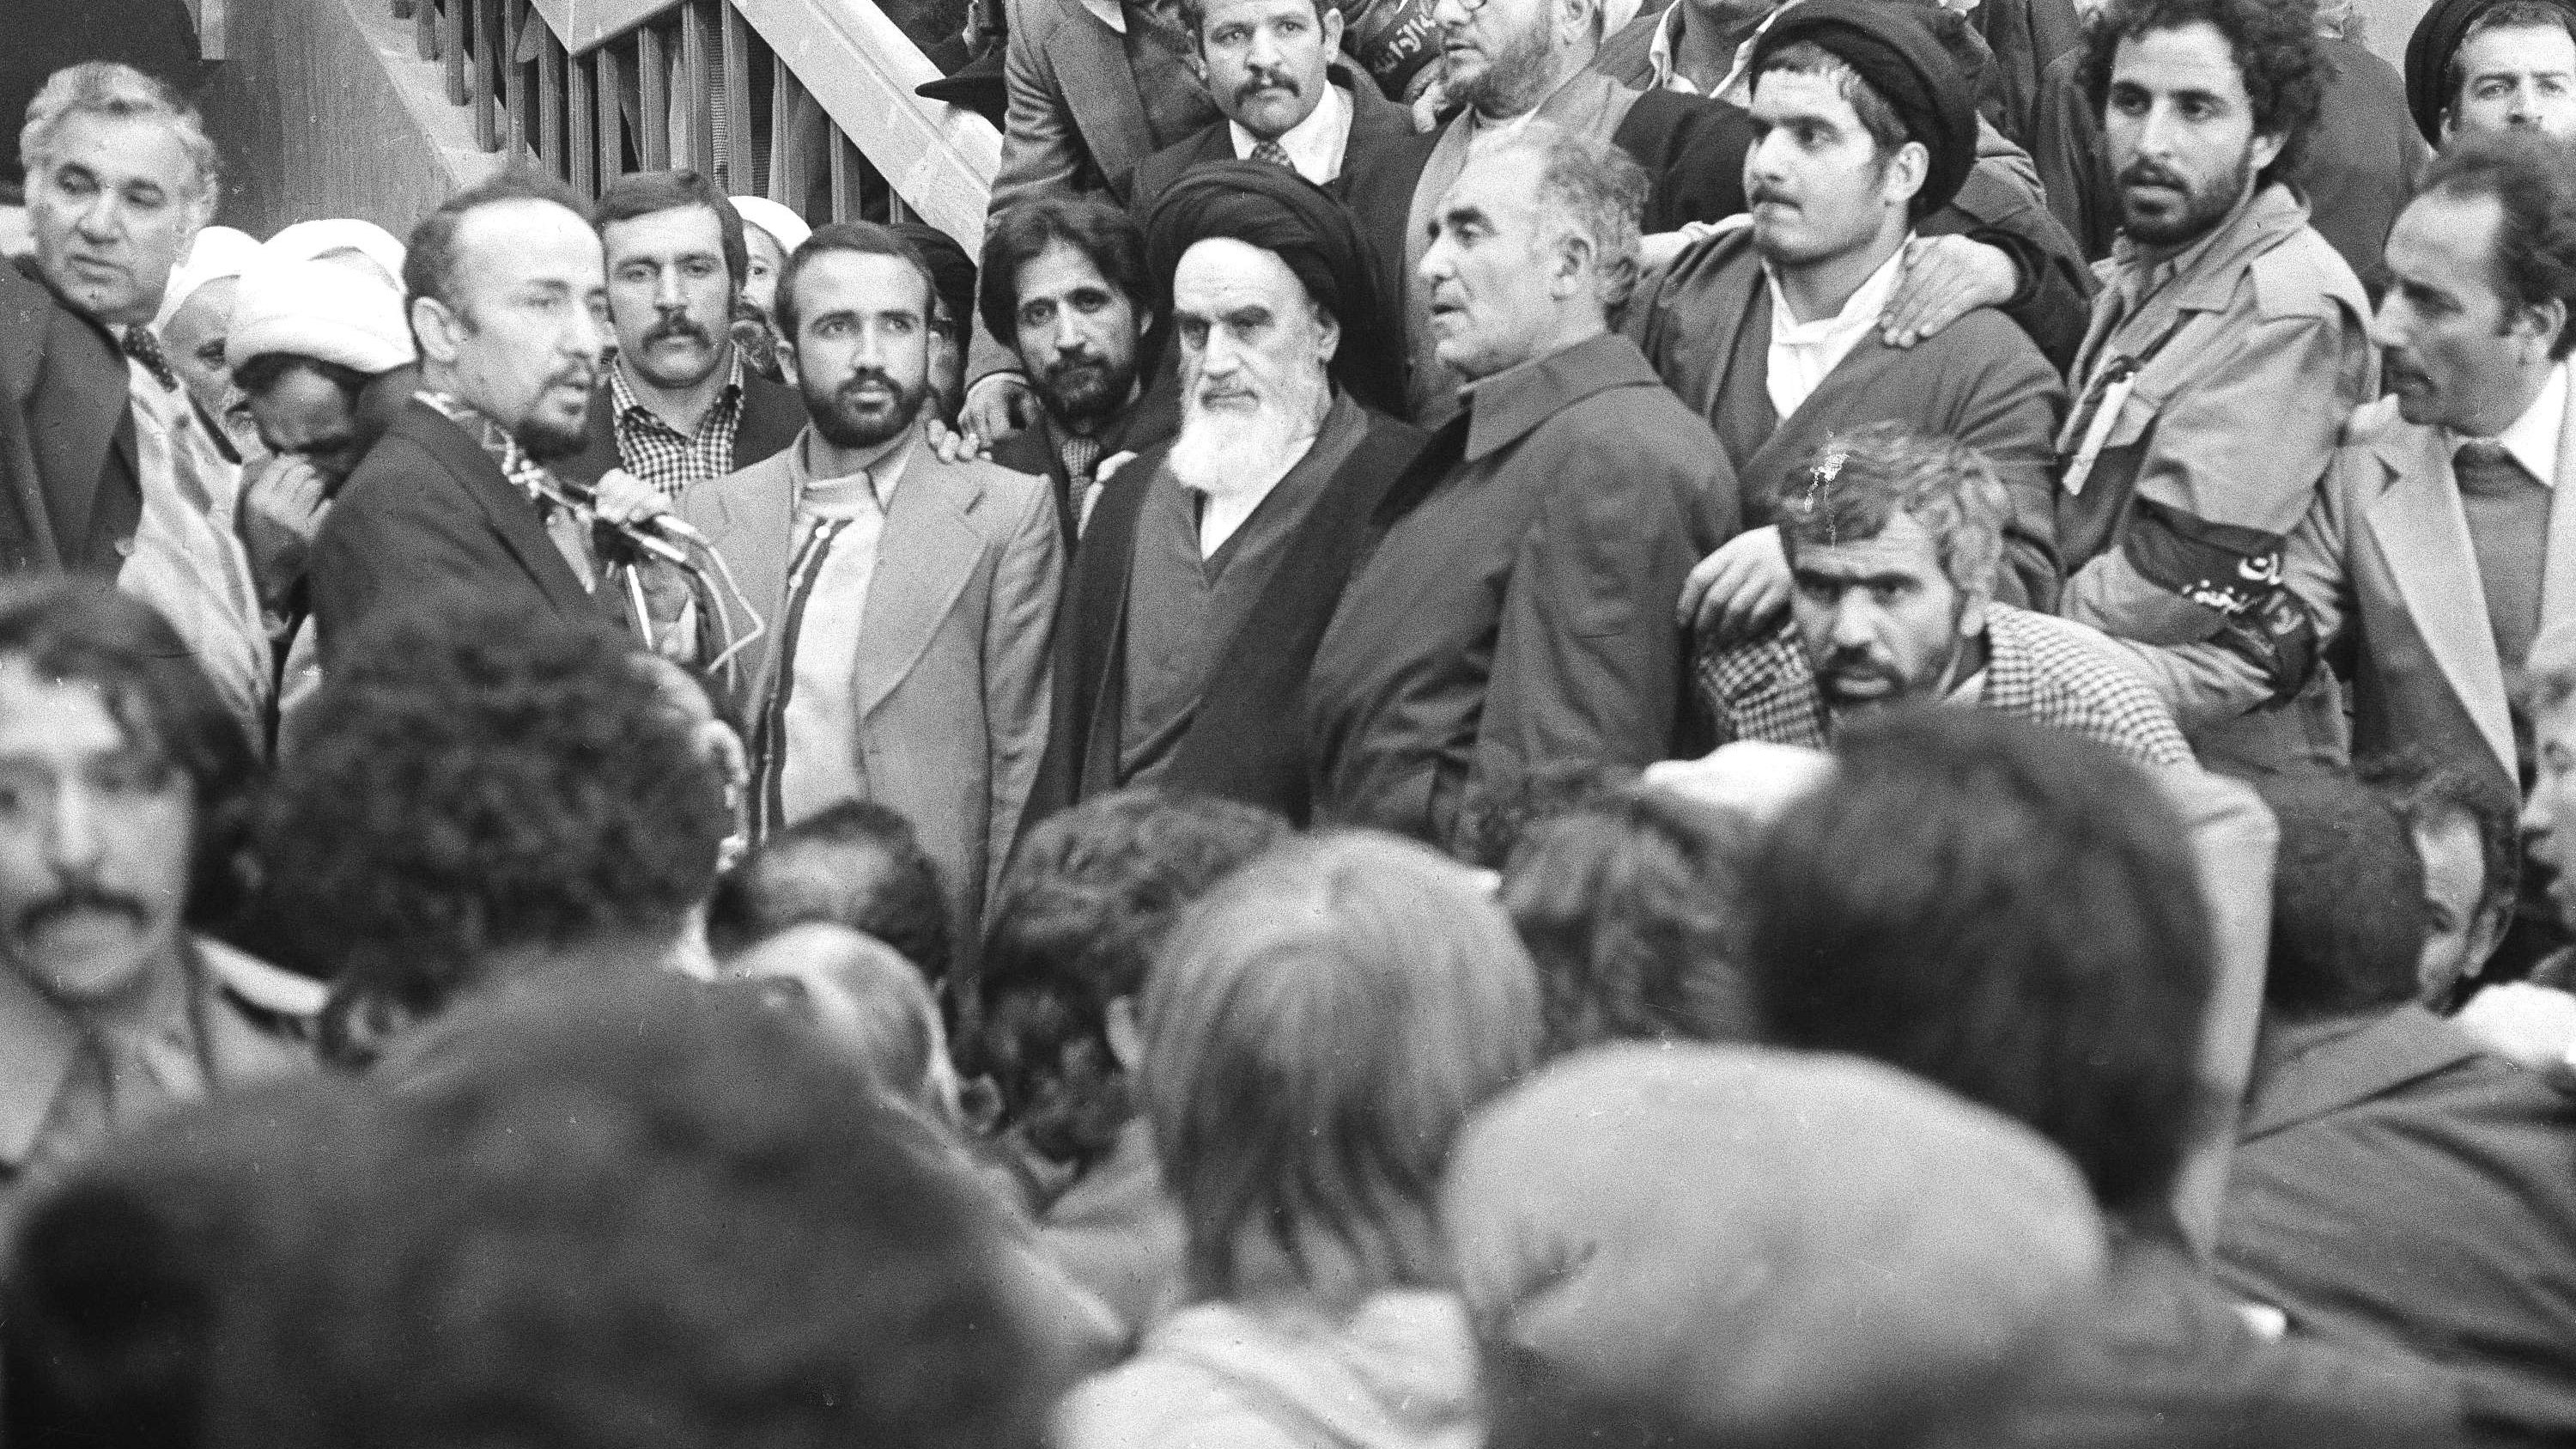 Ayatollah Ruhollah Khomeini, center, is surrounded by followers, Feb. 1, 1979, after his arrival at Mehrabad Airport after 14 years of exile.